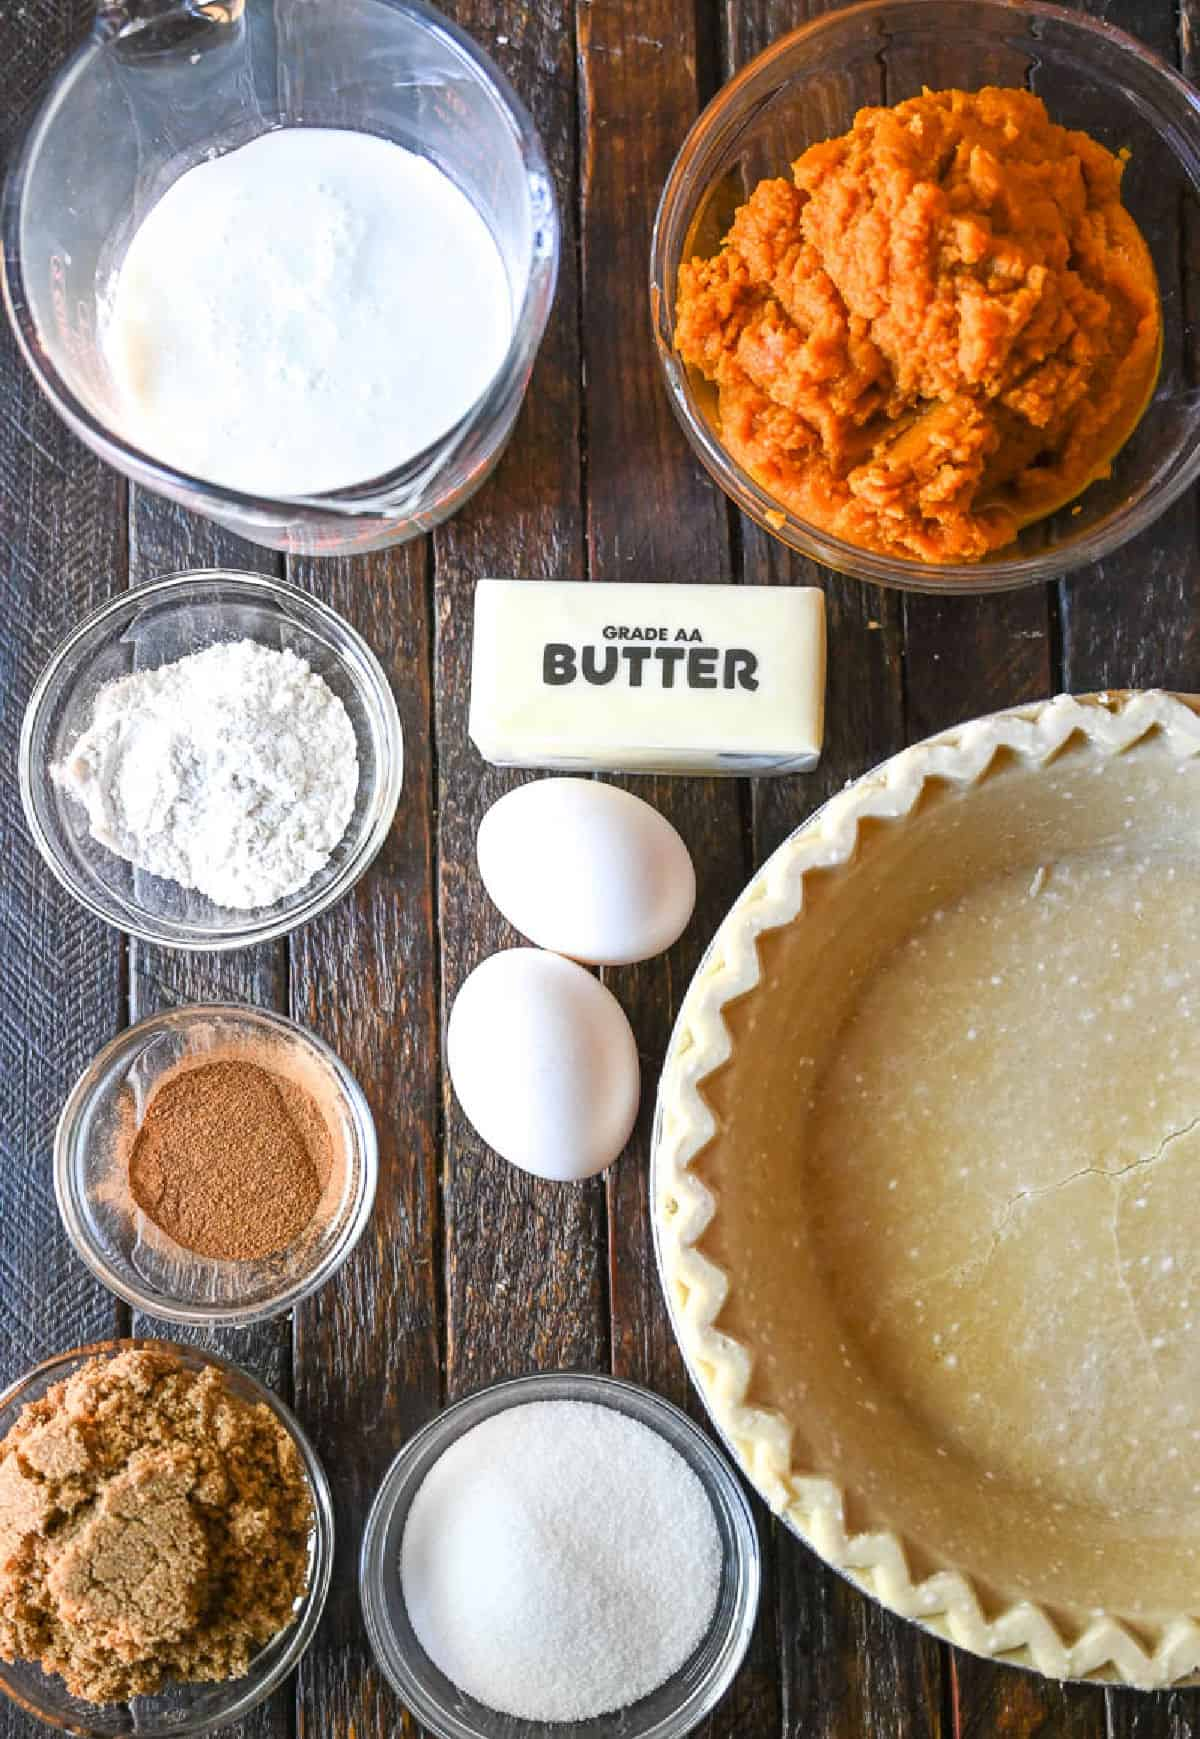 A photo of all the ingredients needed to make buttermilk pumpkin pie.